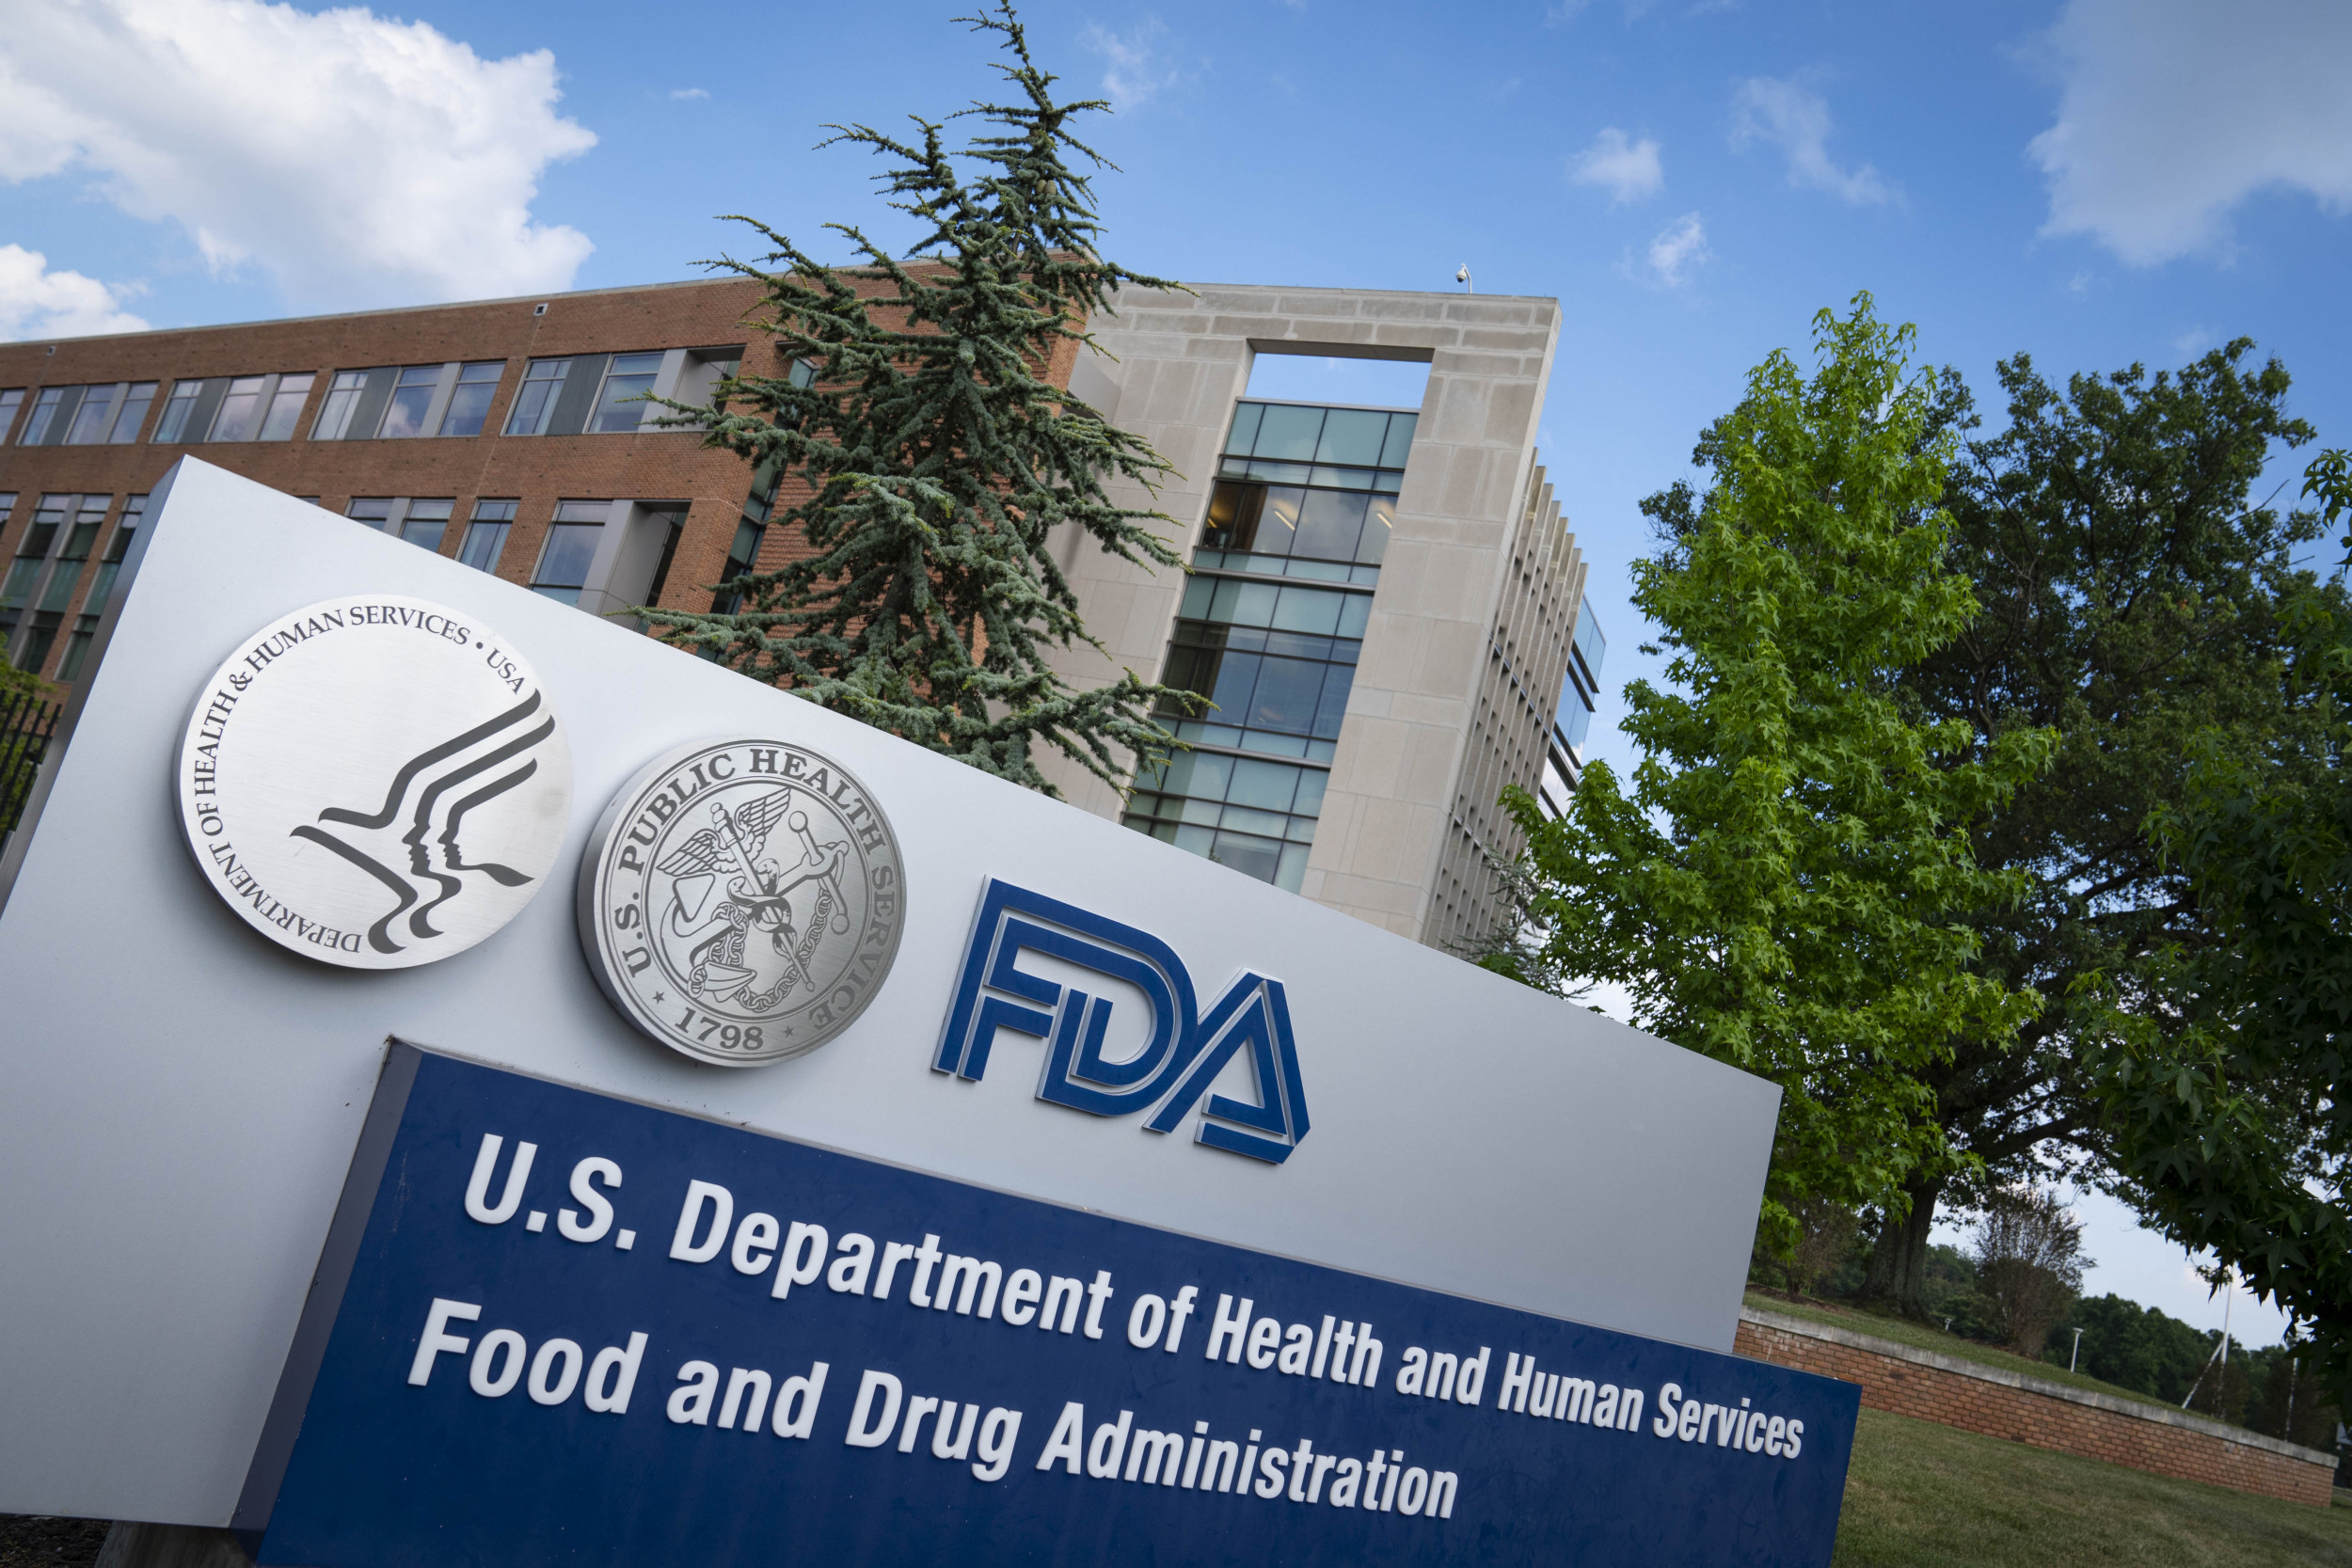 Johns Hopkins researcher calls out FDA, says his team could approve COVID vaccine in an hour